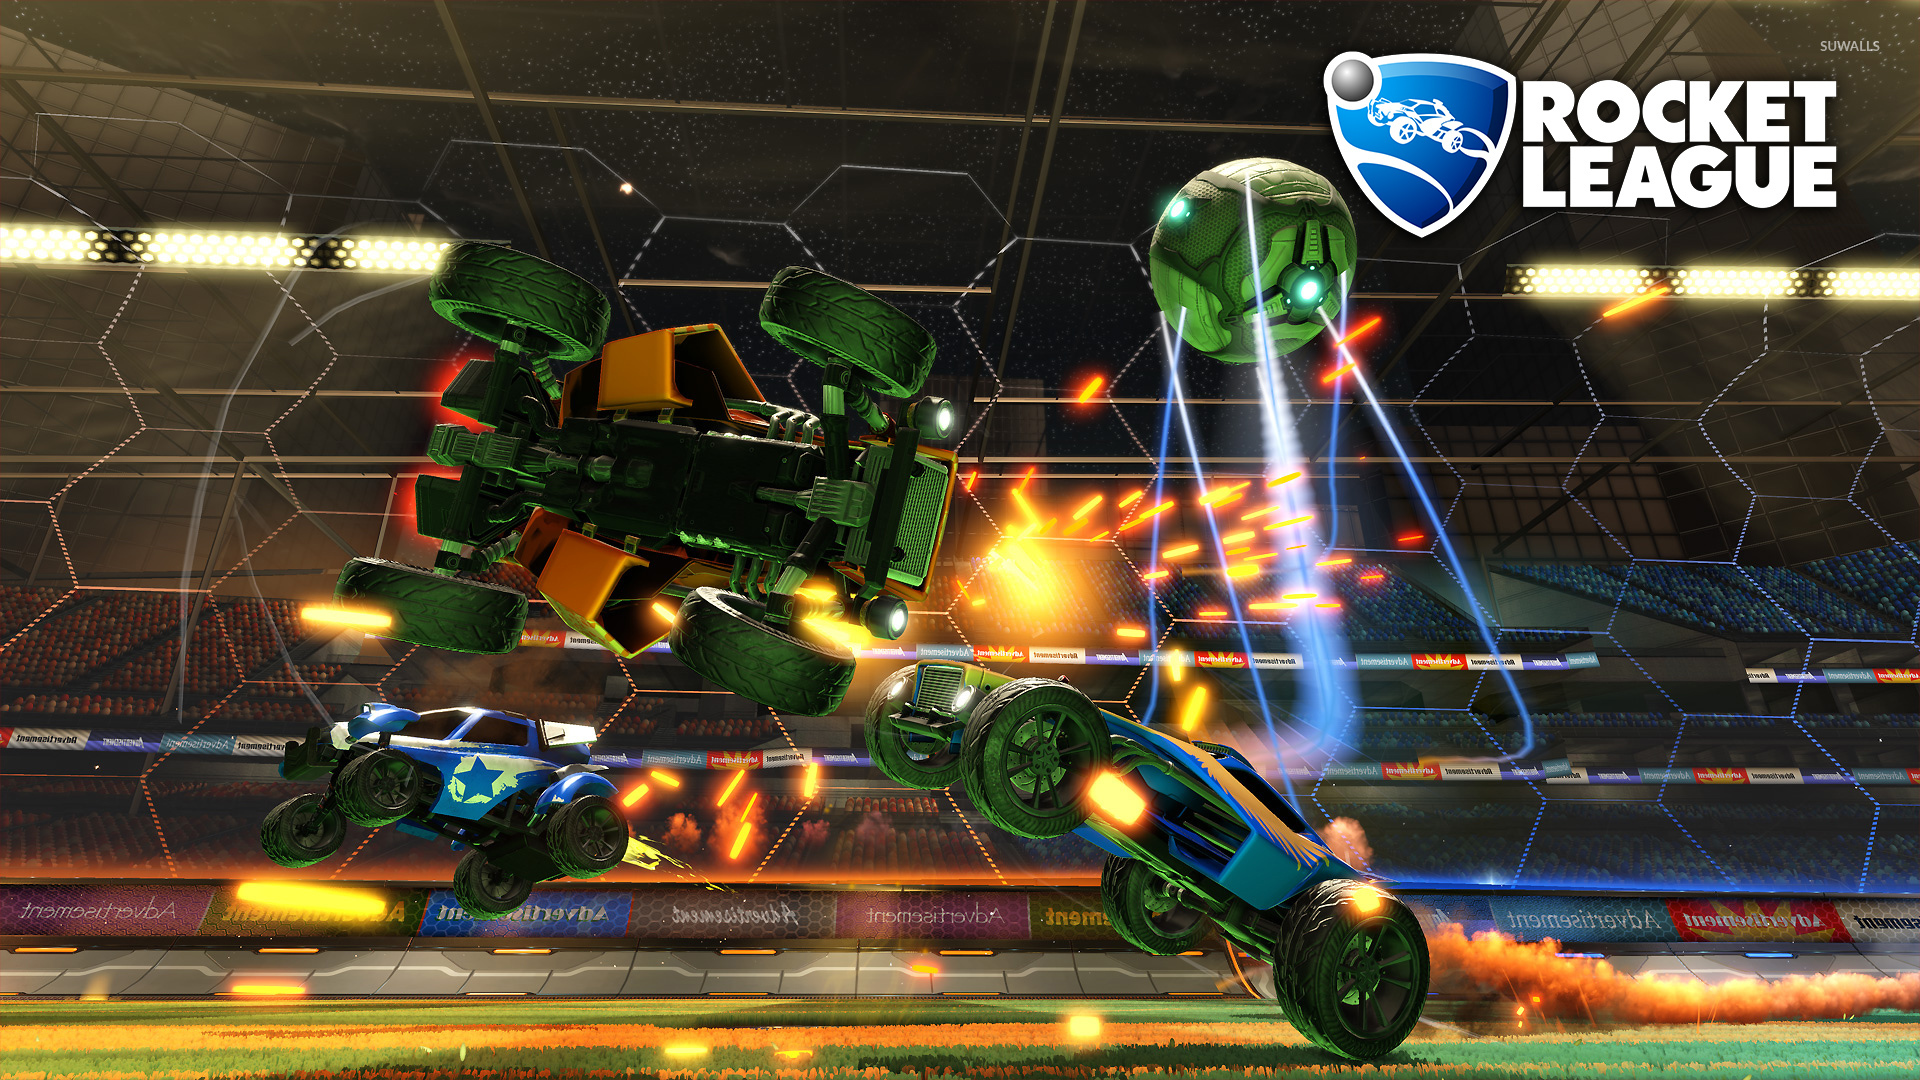 The Legend Of Zelda Wallpaper Hd Three Cars Chasing The Ball In Rocket League Wallpaper